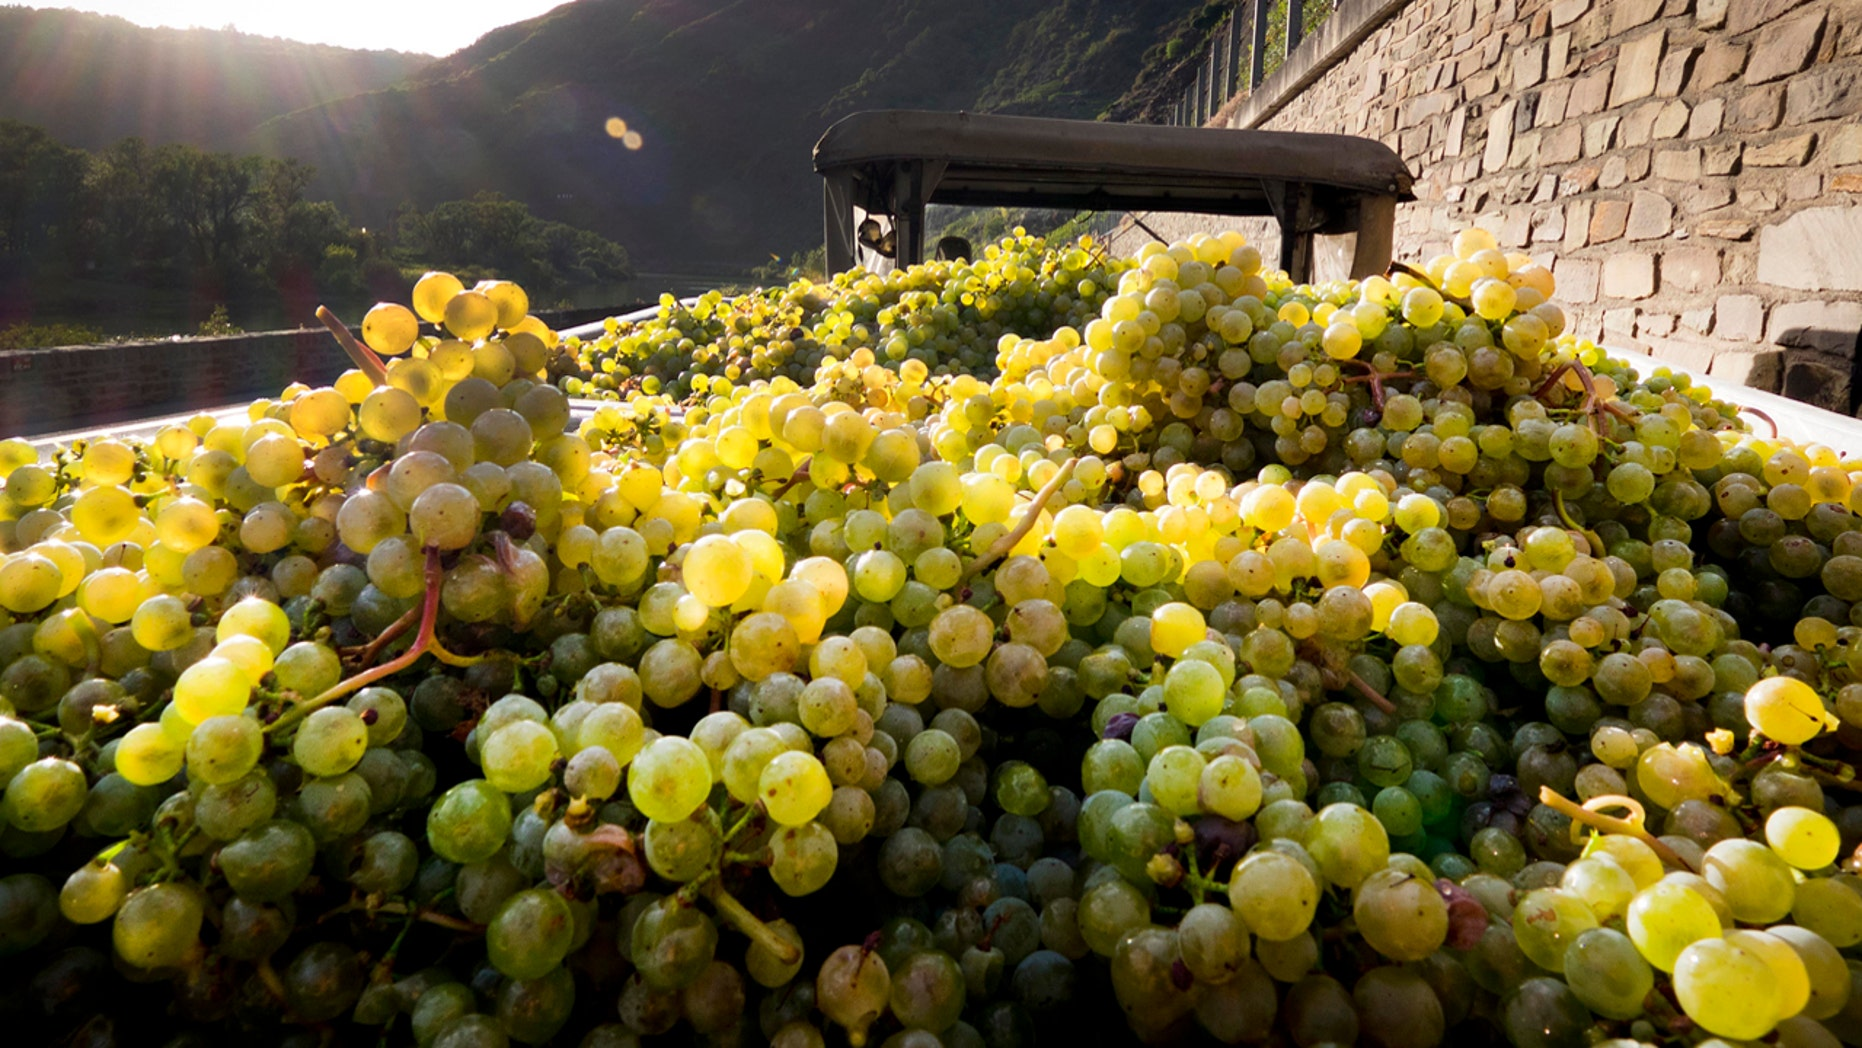 FILE: Grapes lie on a trailer on the bottom of the Calmont vineyard near Bremm, Germany.Nicolas DeMeyer, 41,was scheduled to plead guilty before a Manhattan federal judge tostealing $1.2 million worth of rare wines before jumping to his death Tuesday.